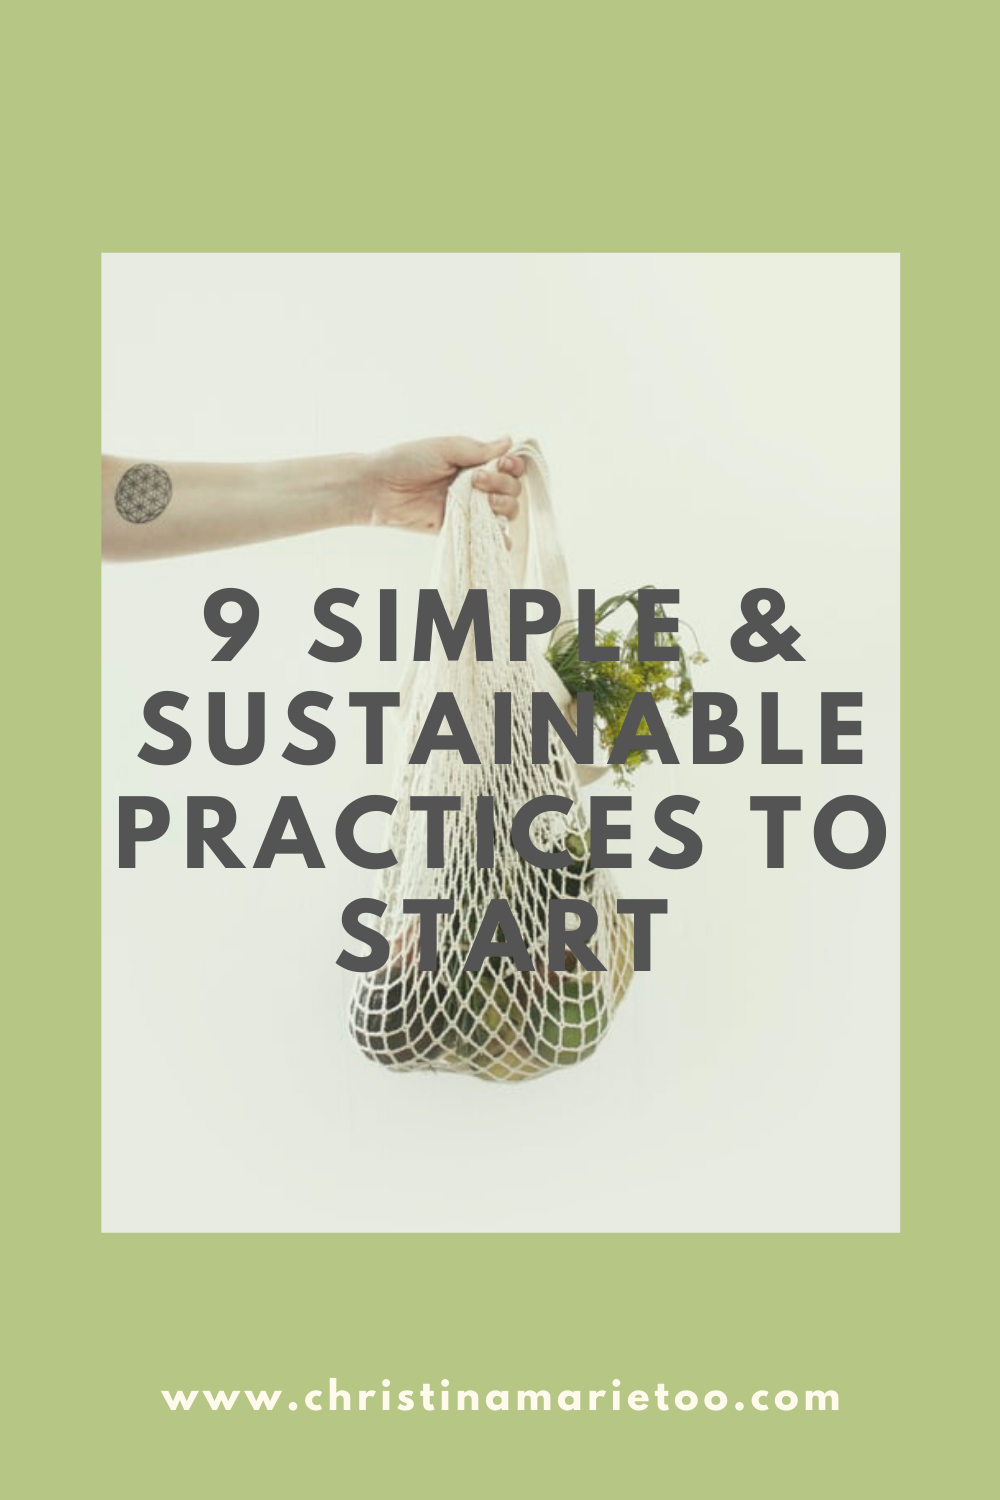 9 SIMPLE & SUSTAINABLE PRACTICES TO START